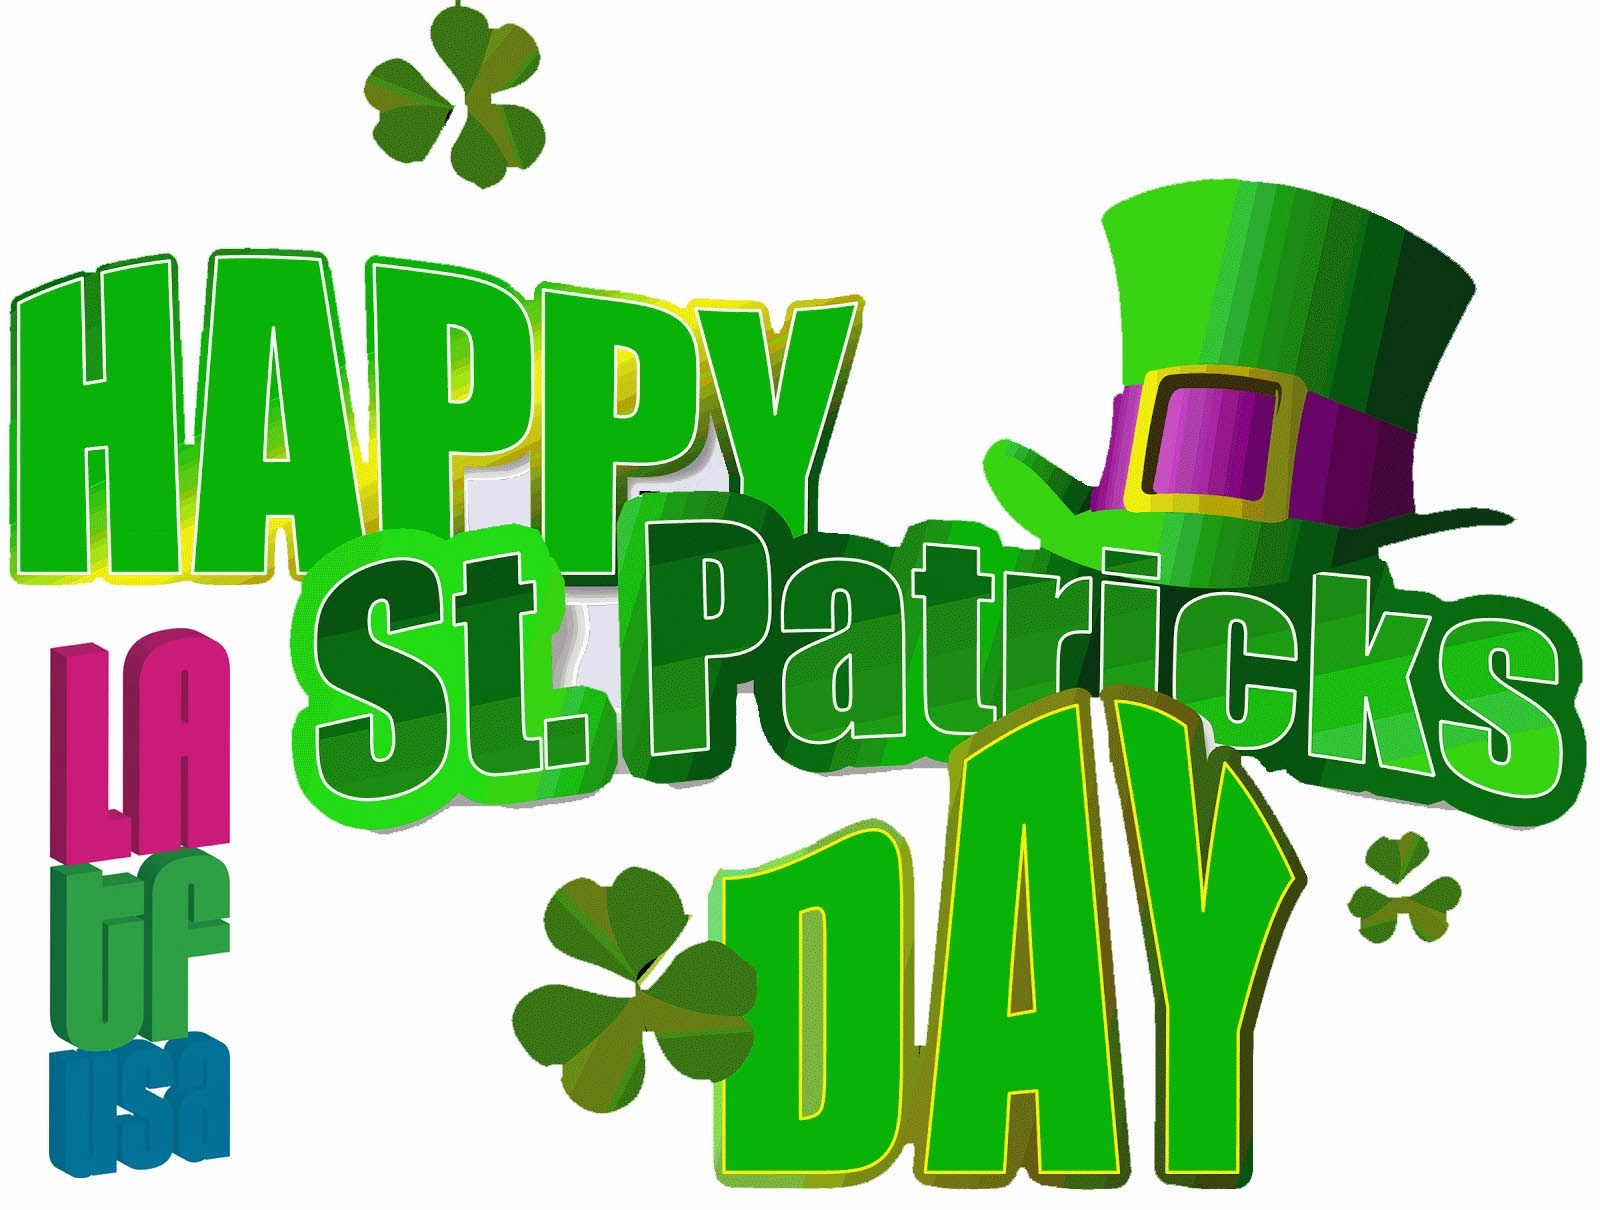 St Patrick's Day Images 2014